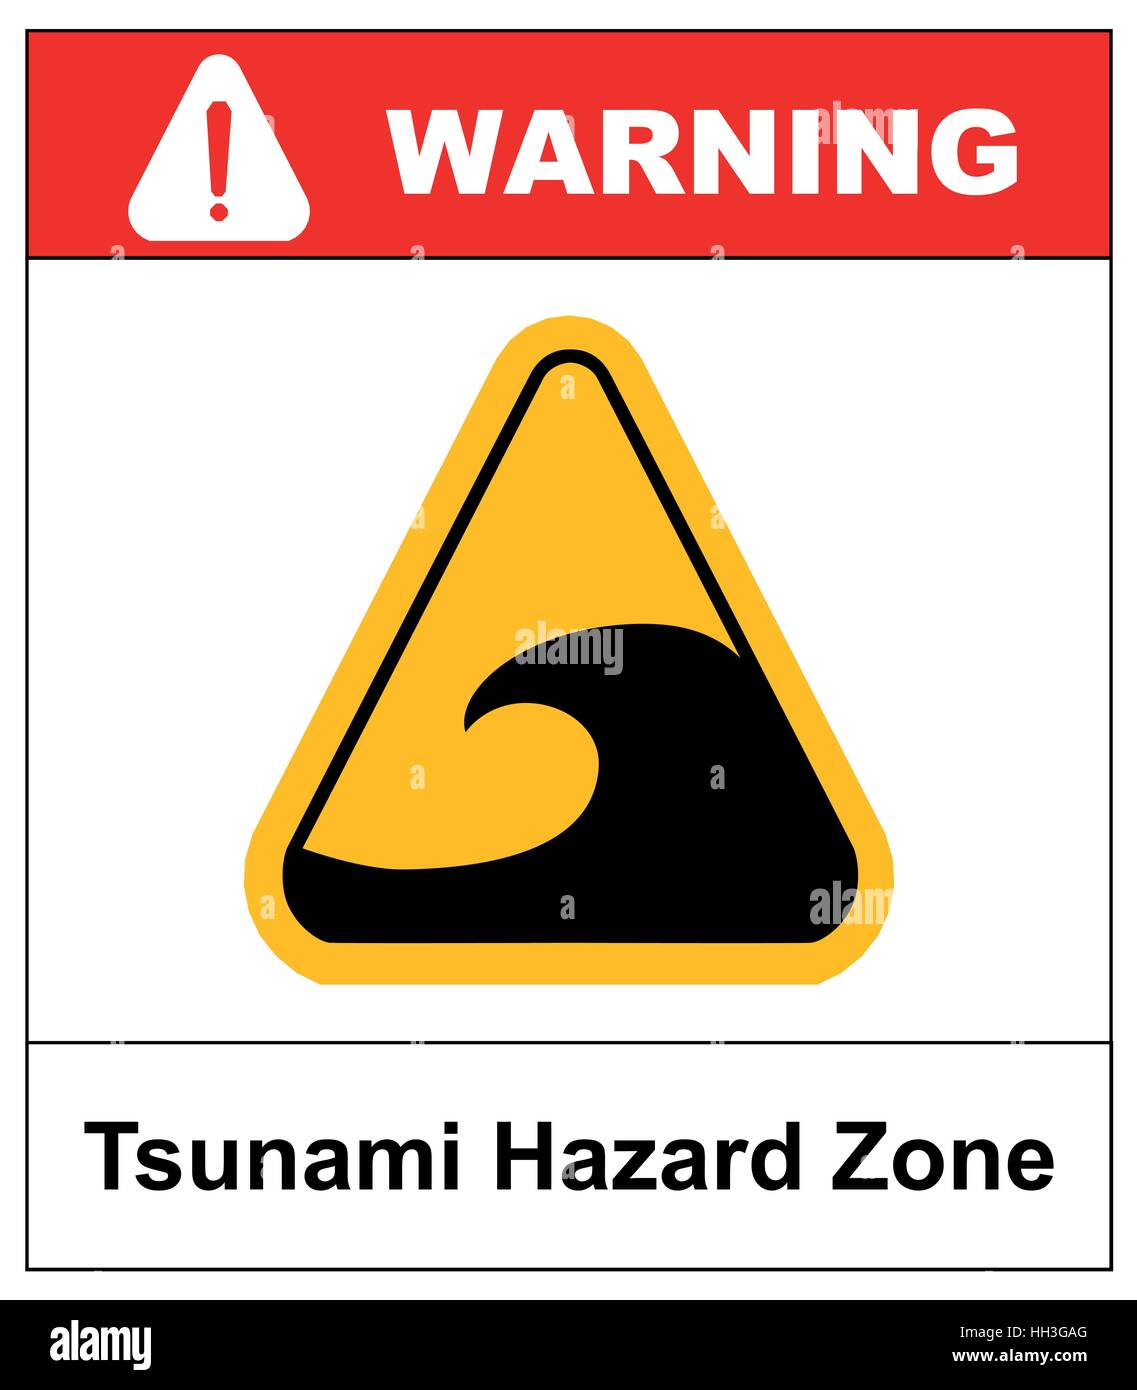 Tsunami hazard zone sign. In case of earthouake go to high ground or inland. Vector warning sticker label with wave - Stock Vector